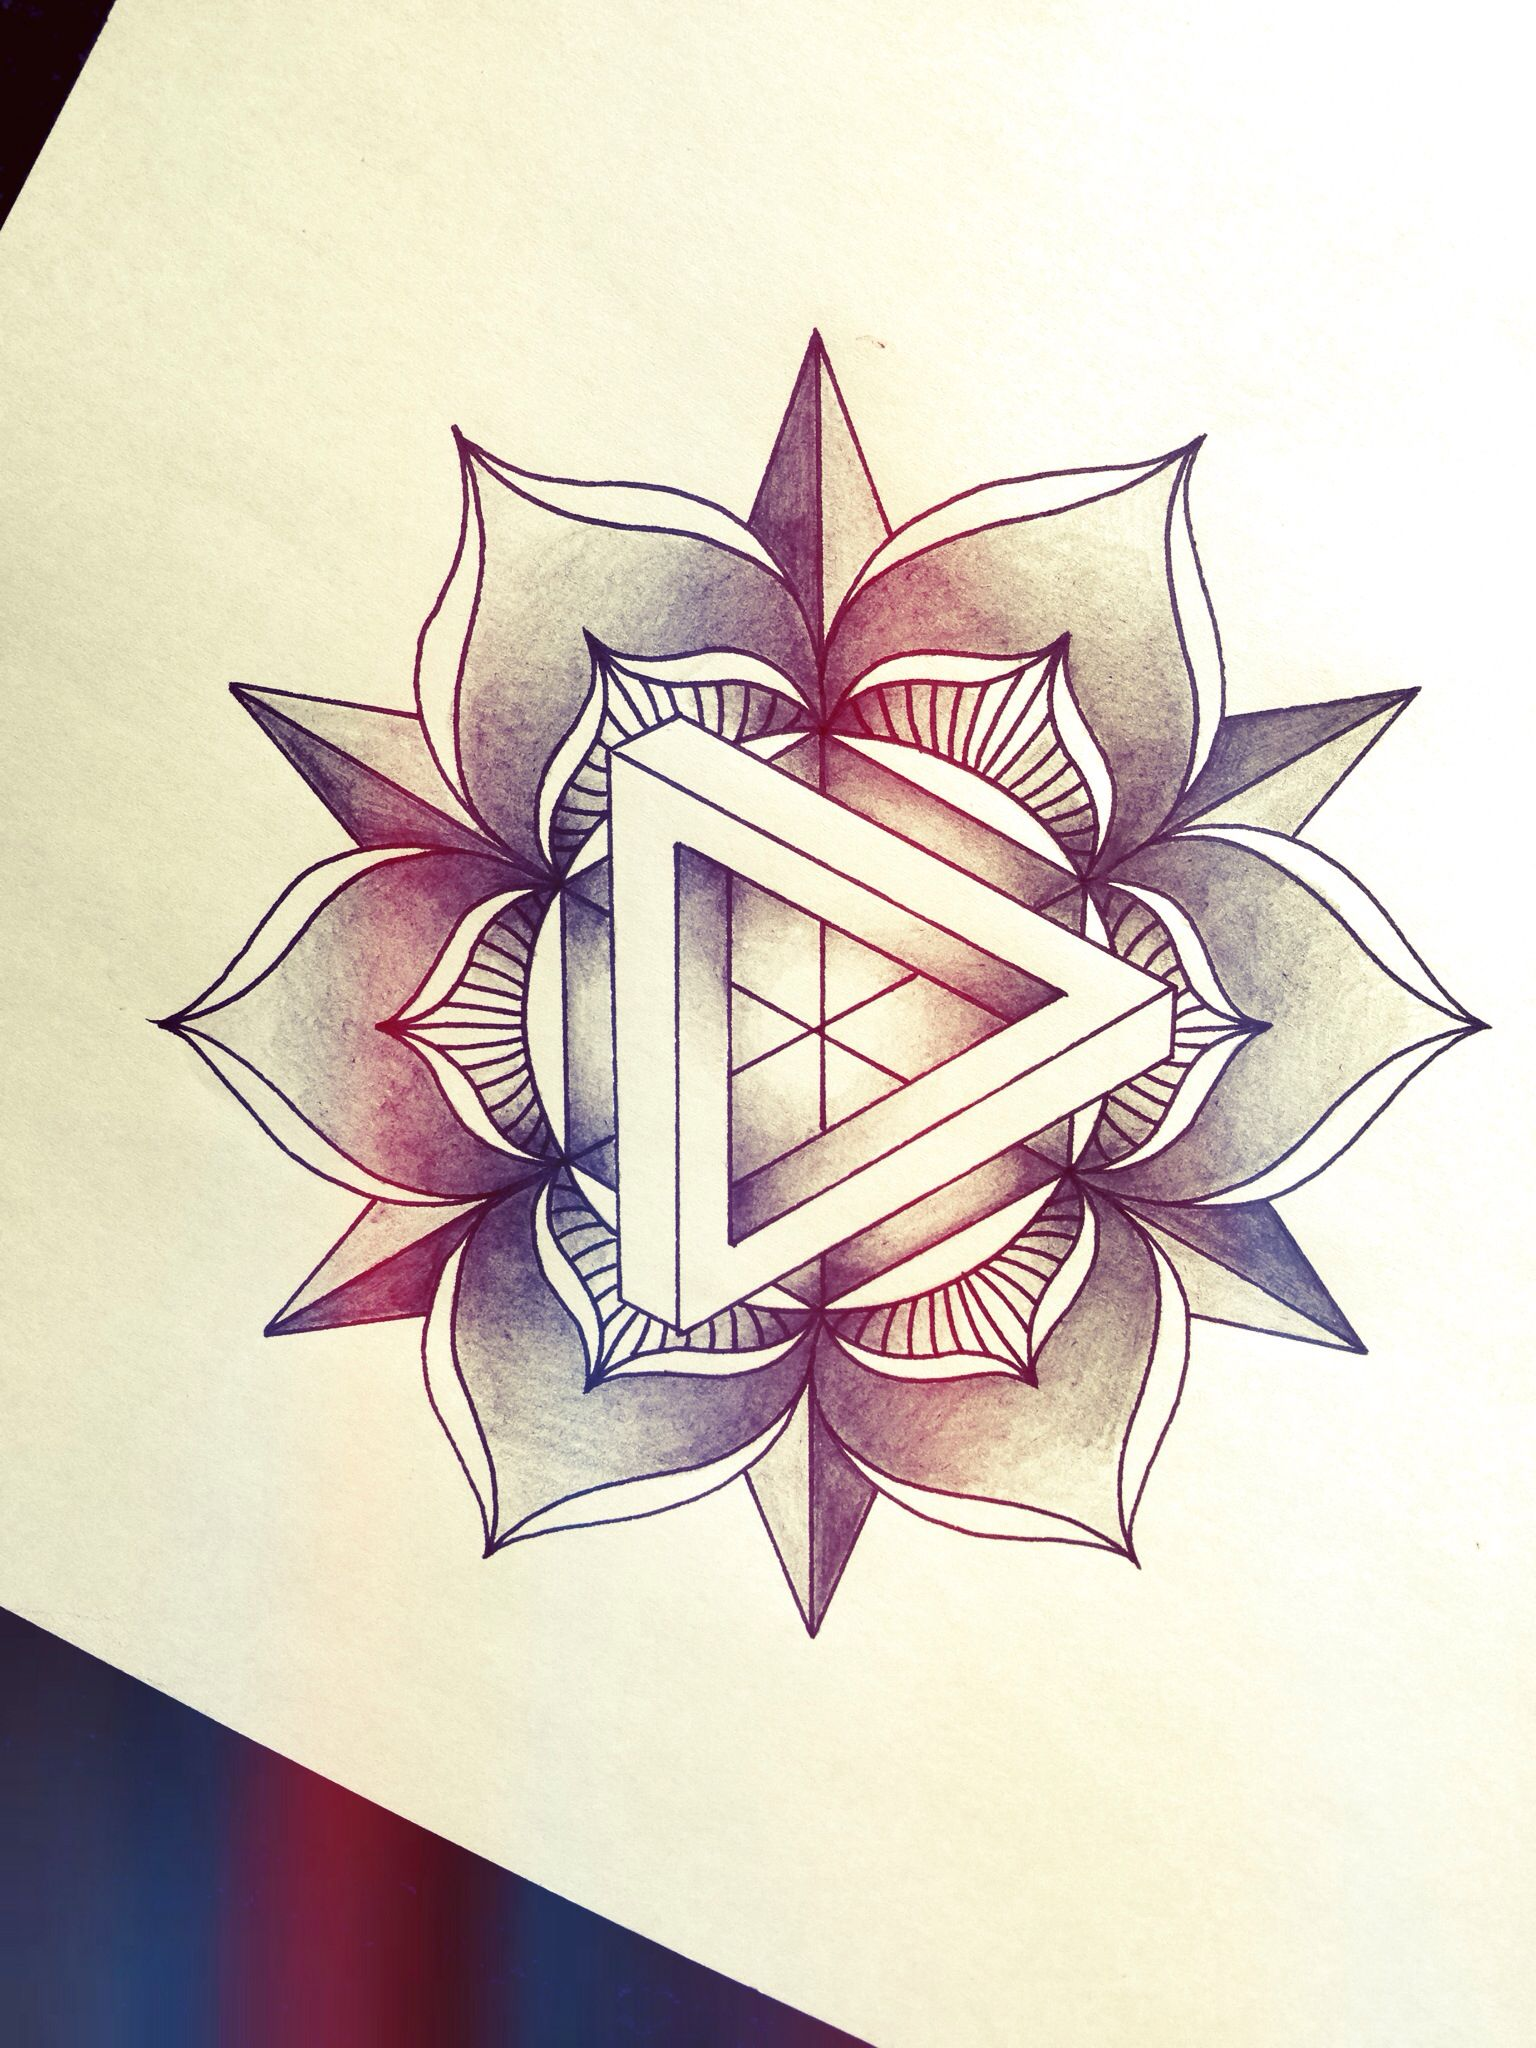 40 mysterious sacred geometry tattoo designs - 40 Inspirational Creative Tattoo Ideas For Men And Women